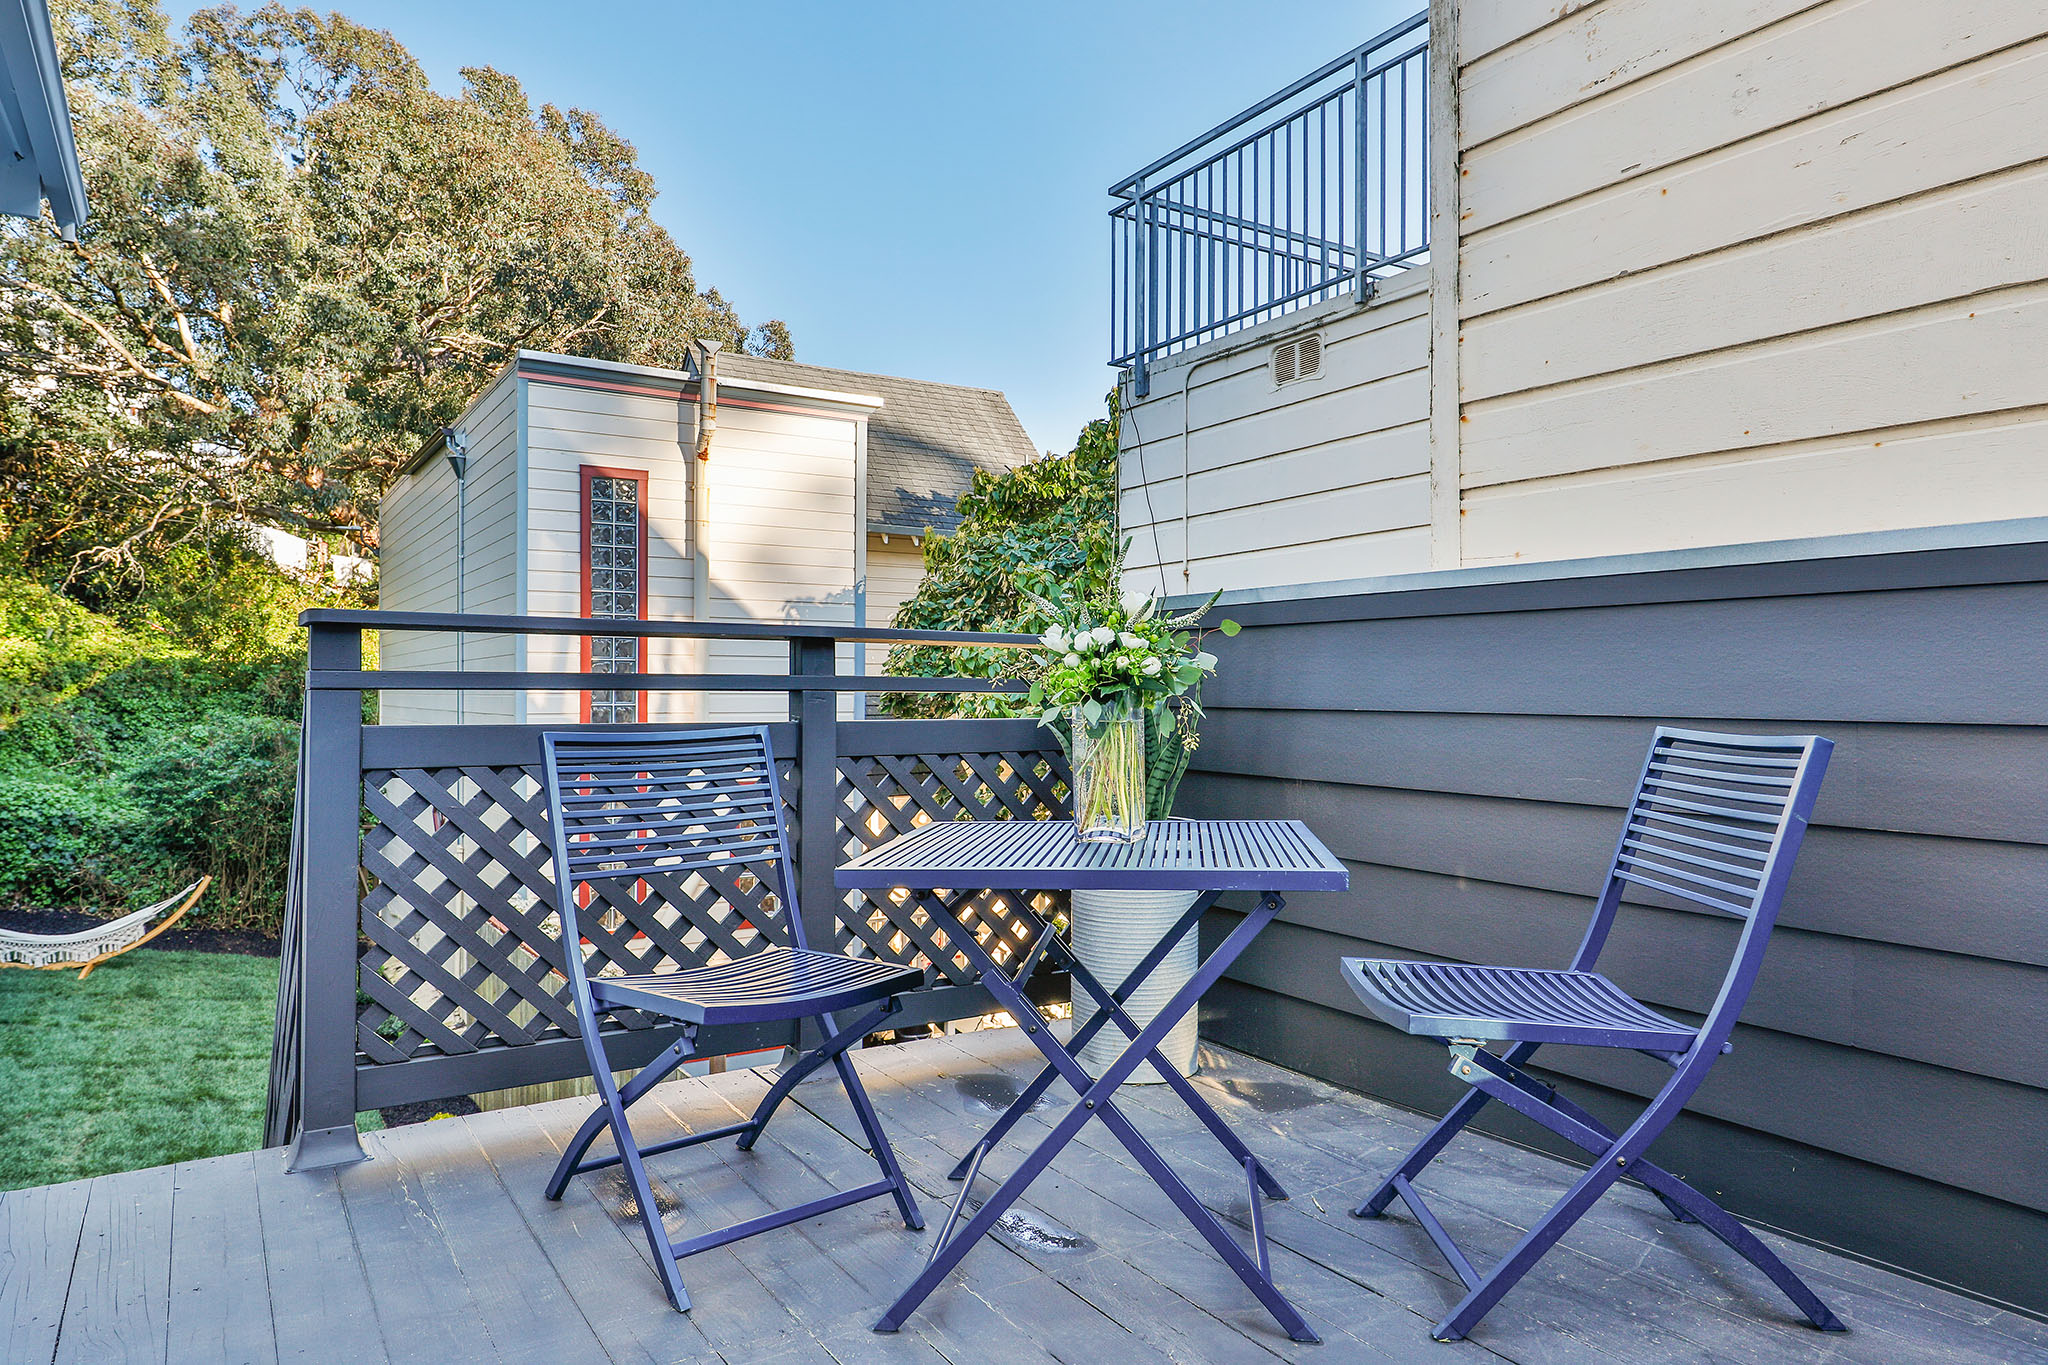 SF Home - sitting area on deck